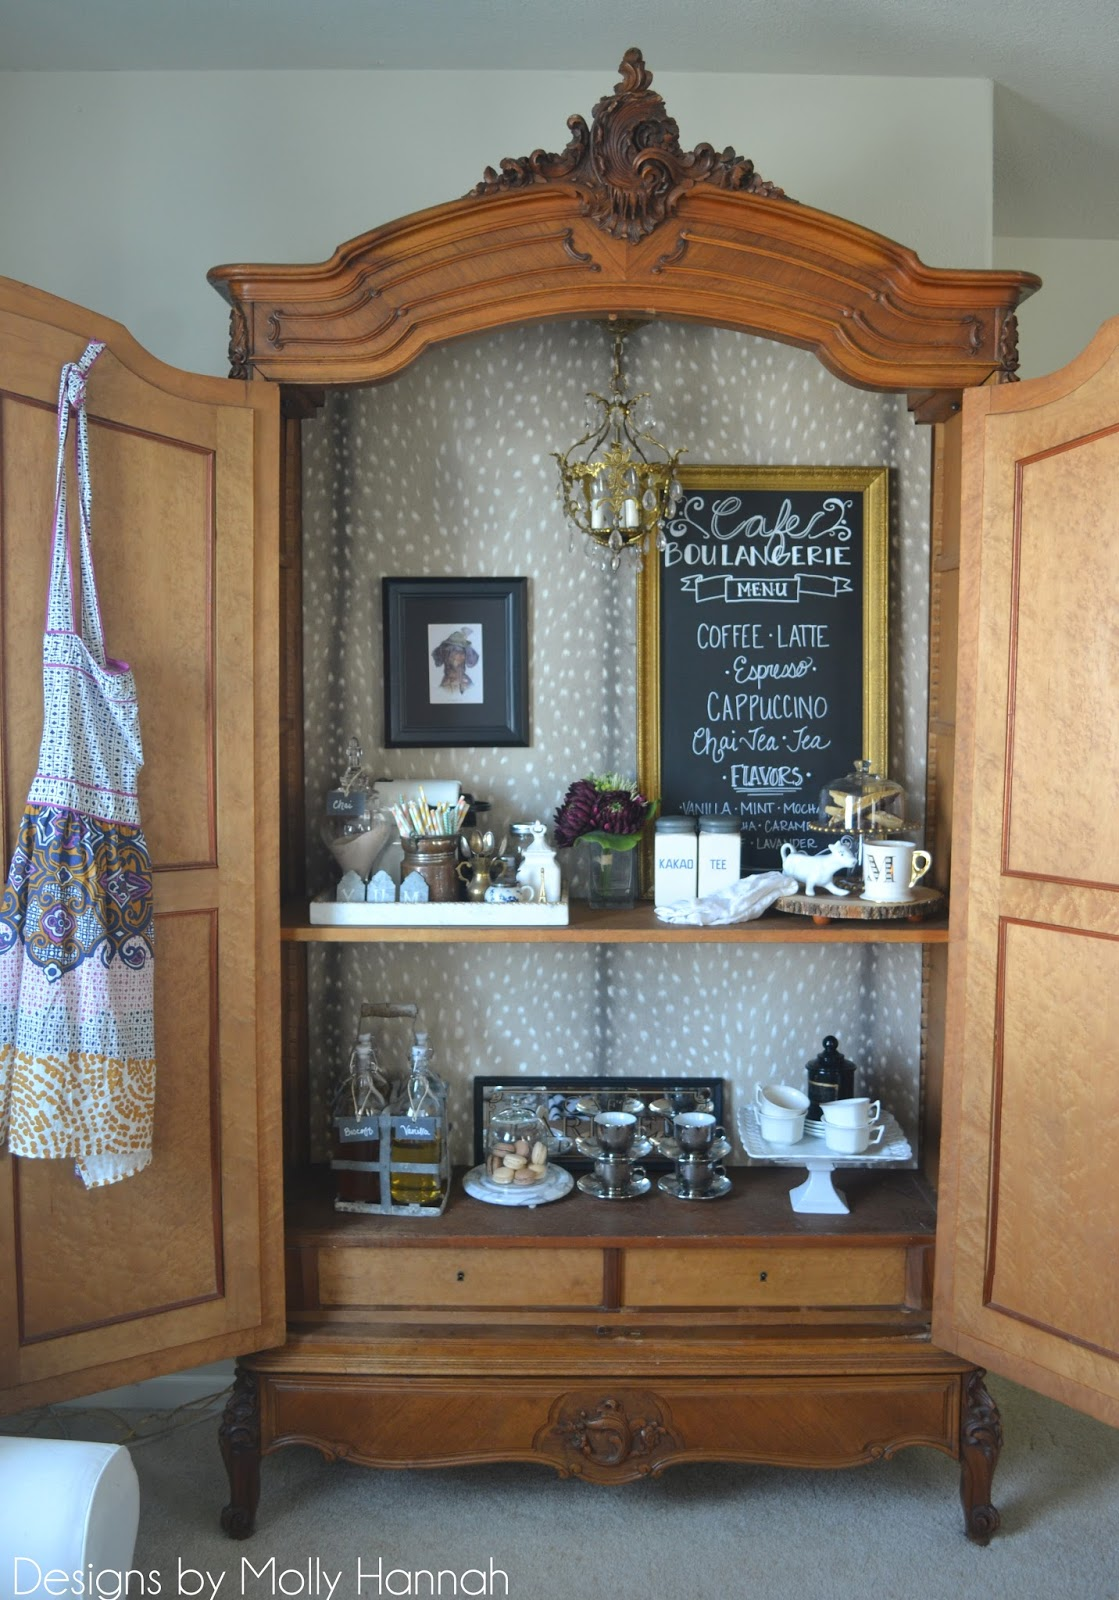 The Poor Sophisticate Espresso Bar Armoire Part Two